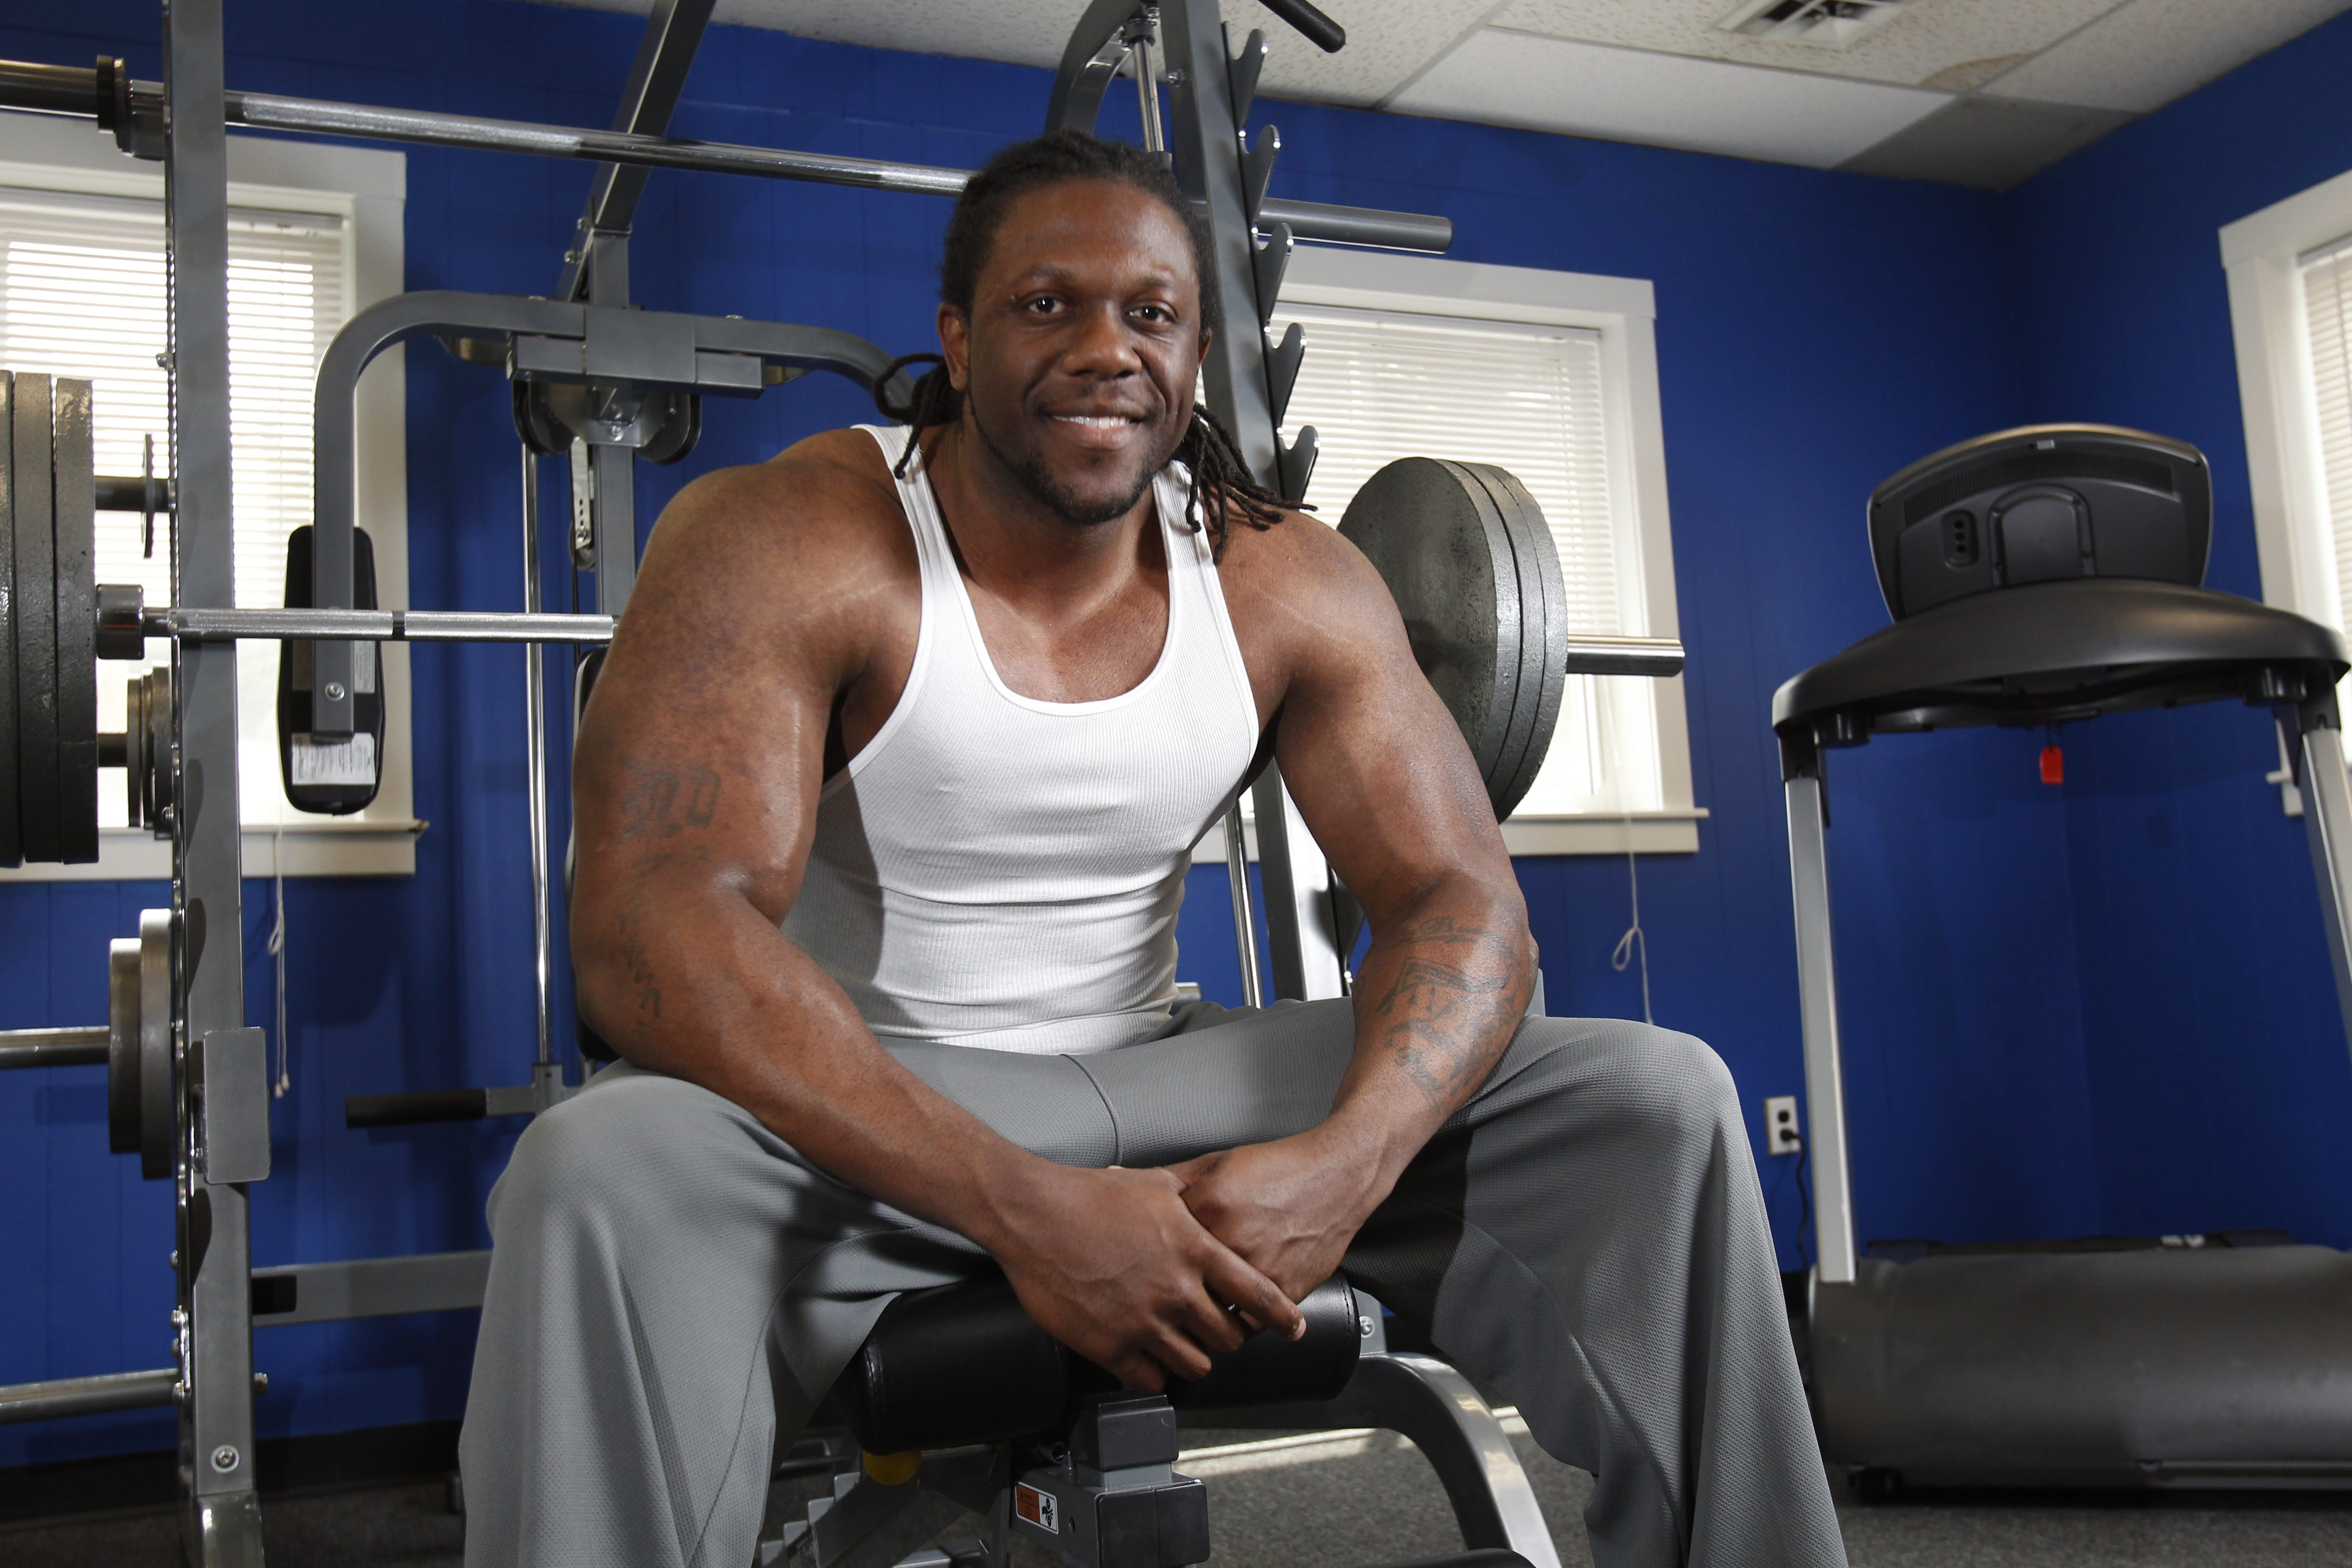 Dwayne Brinson is a personal fitness trainer and the owner of Fit Nation which recently opened on Main St. in Williamsville.  He was photographed at Fit Nation,Tuesday, June 10, 2014.  (Sharon Cantillon/Buffalo News)